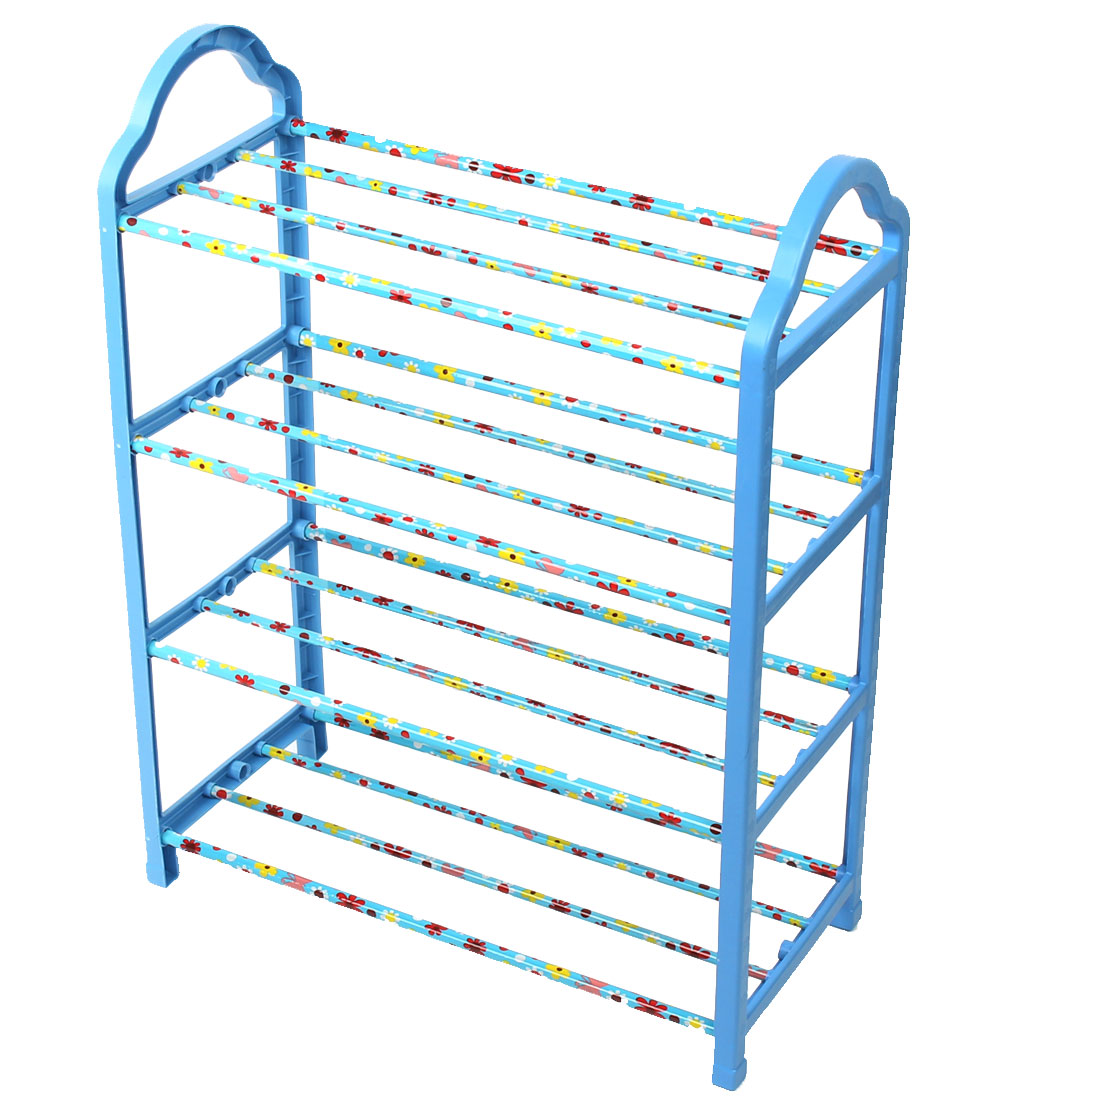 Household Plastic 4 Layers Detachable Storage Organizer Holder Shelf Shoes Rack Blue